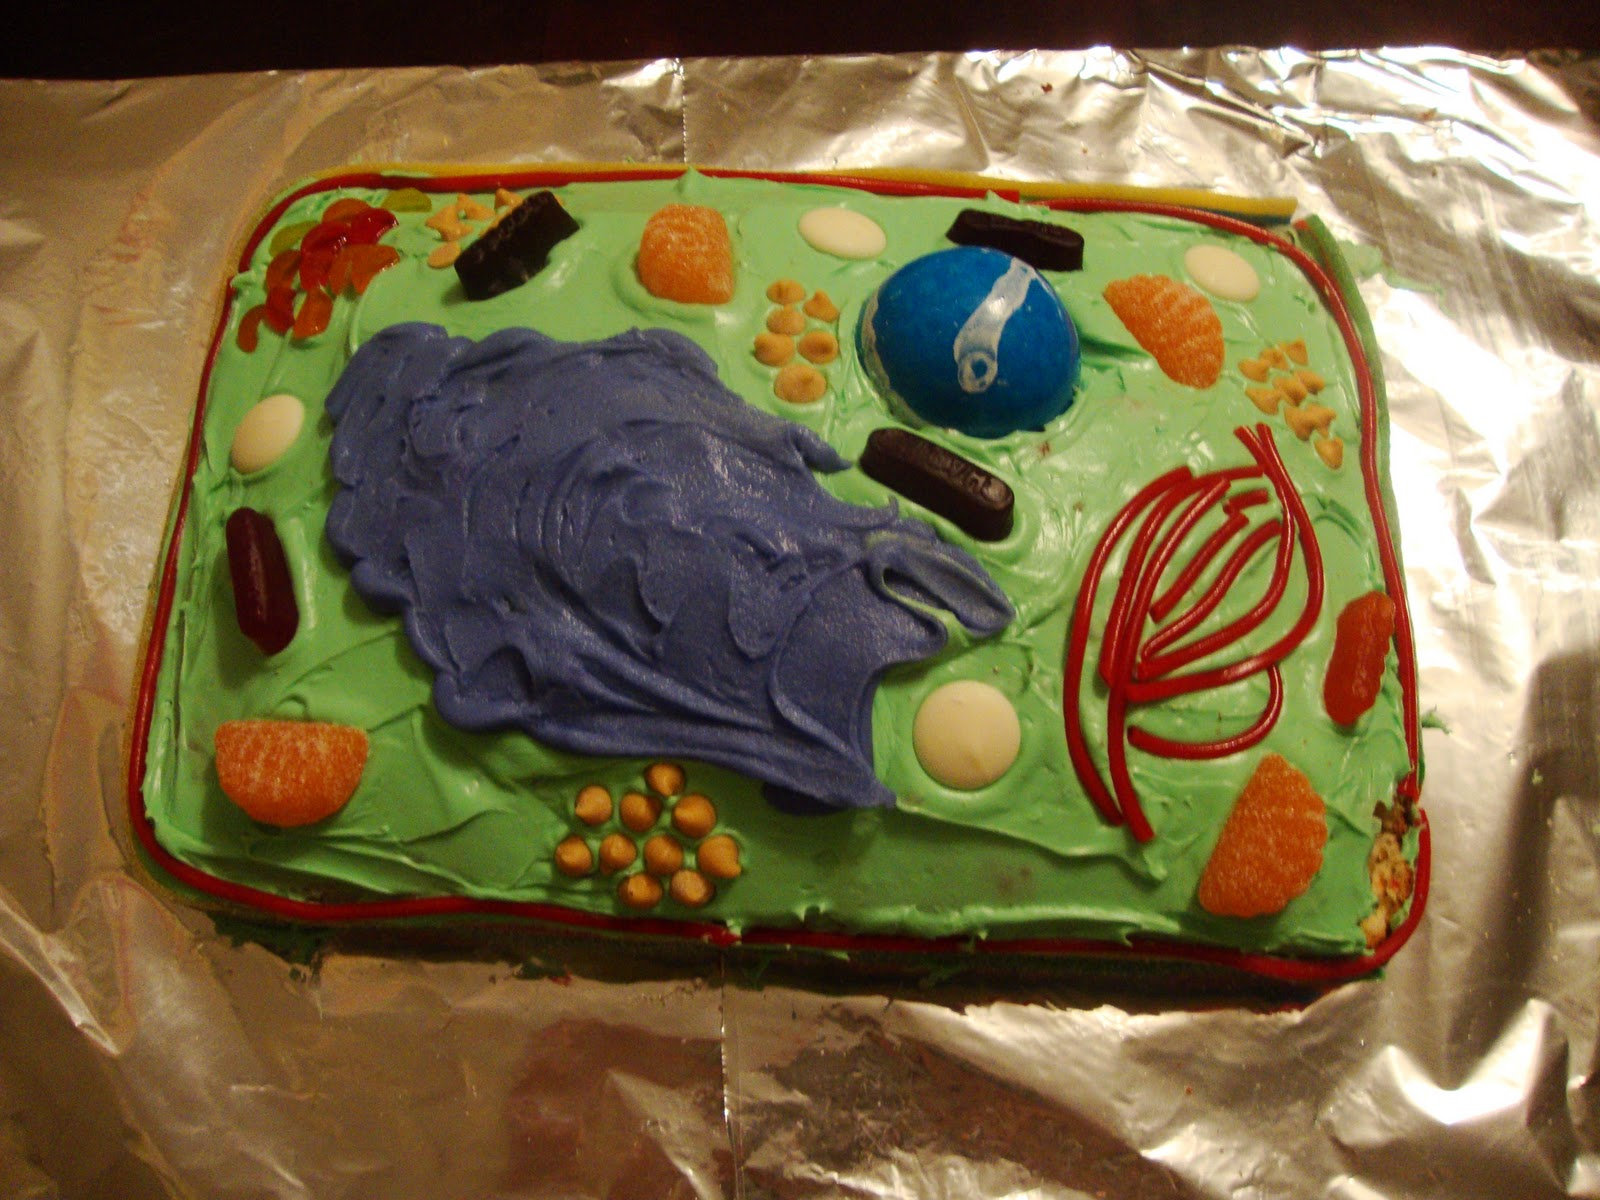 Basic Plant Cell Diagram Cake Labeled Wire Diagrams Simple For Kids Blank